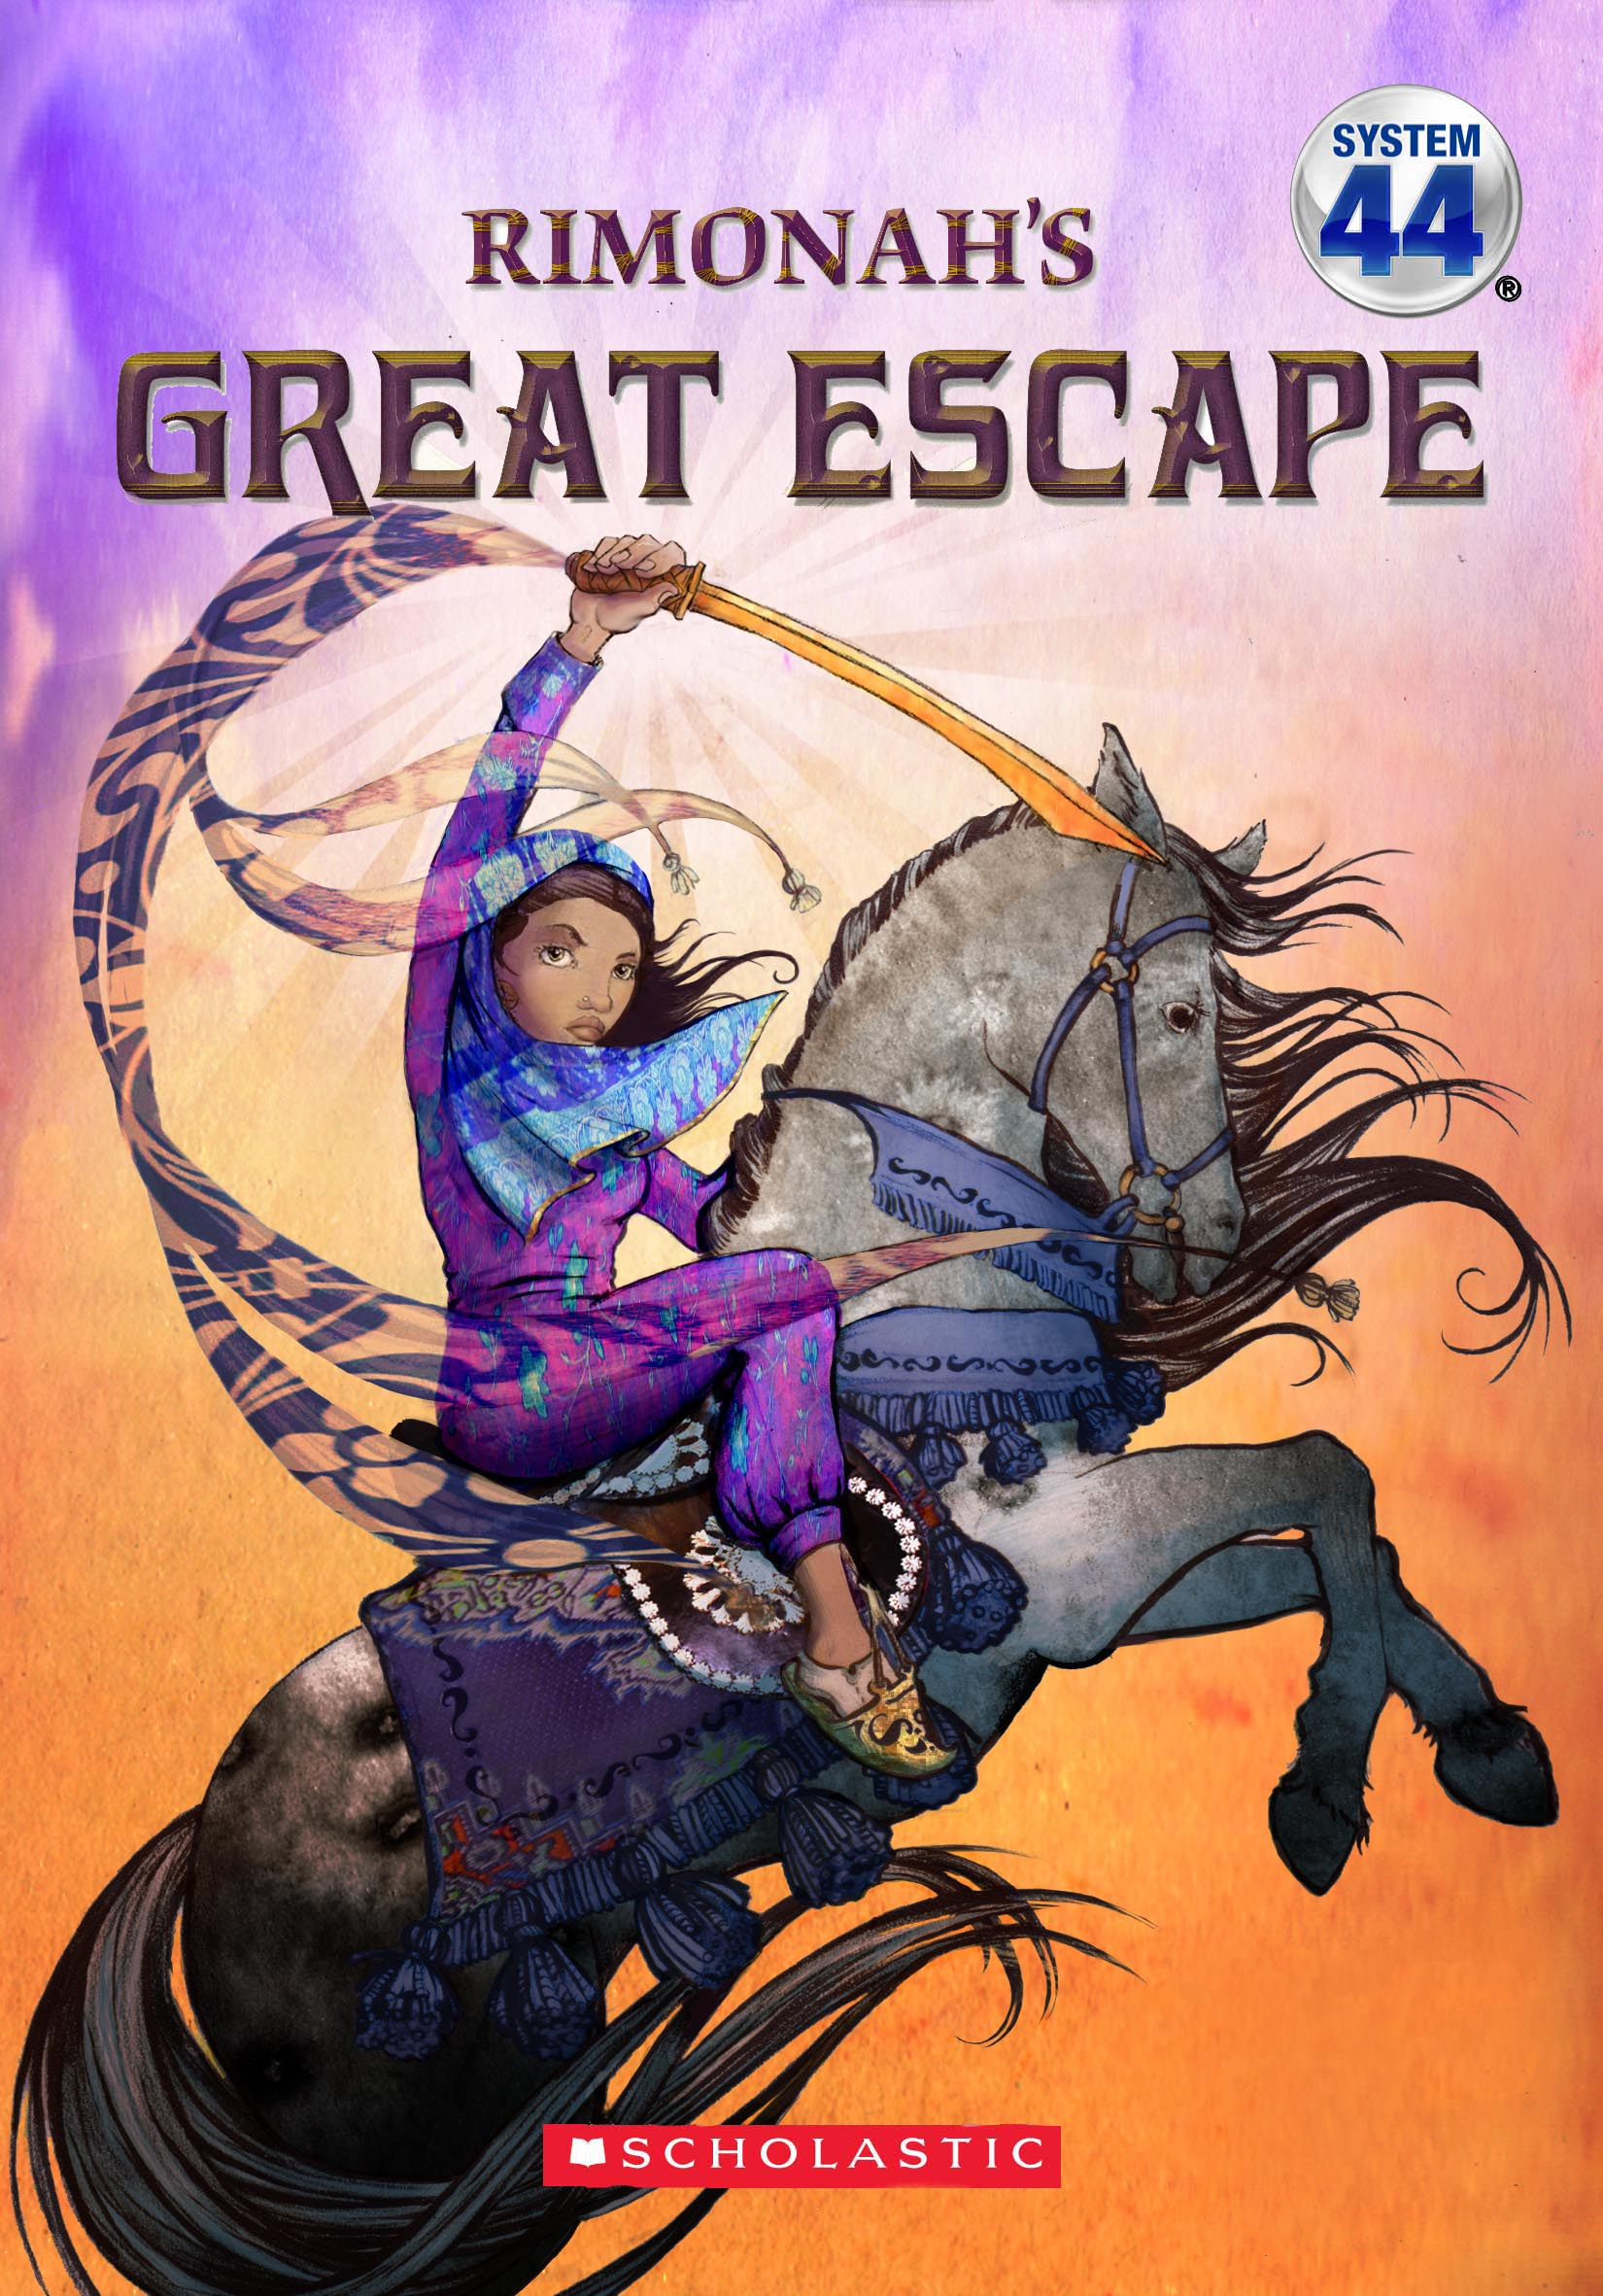 Rimonah's Great Escape for Scholastic  -  Art Director Kathi Gulotta